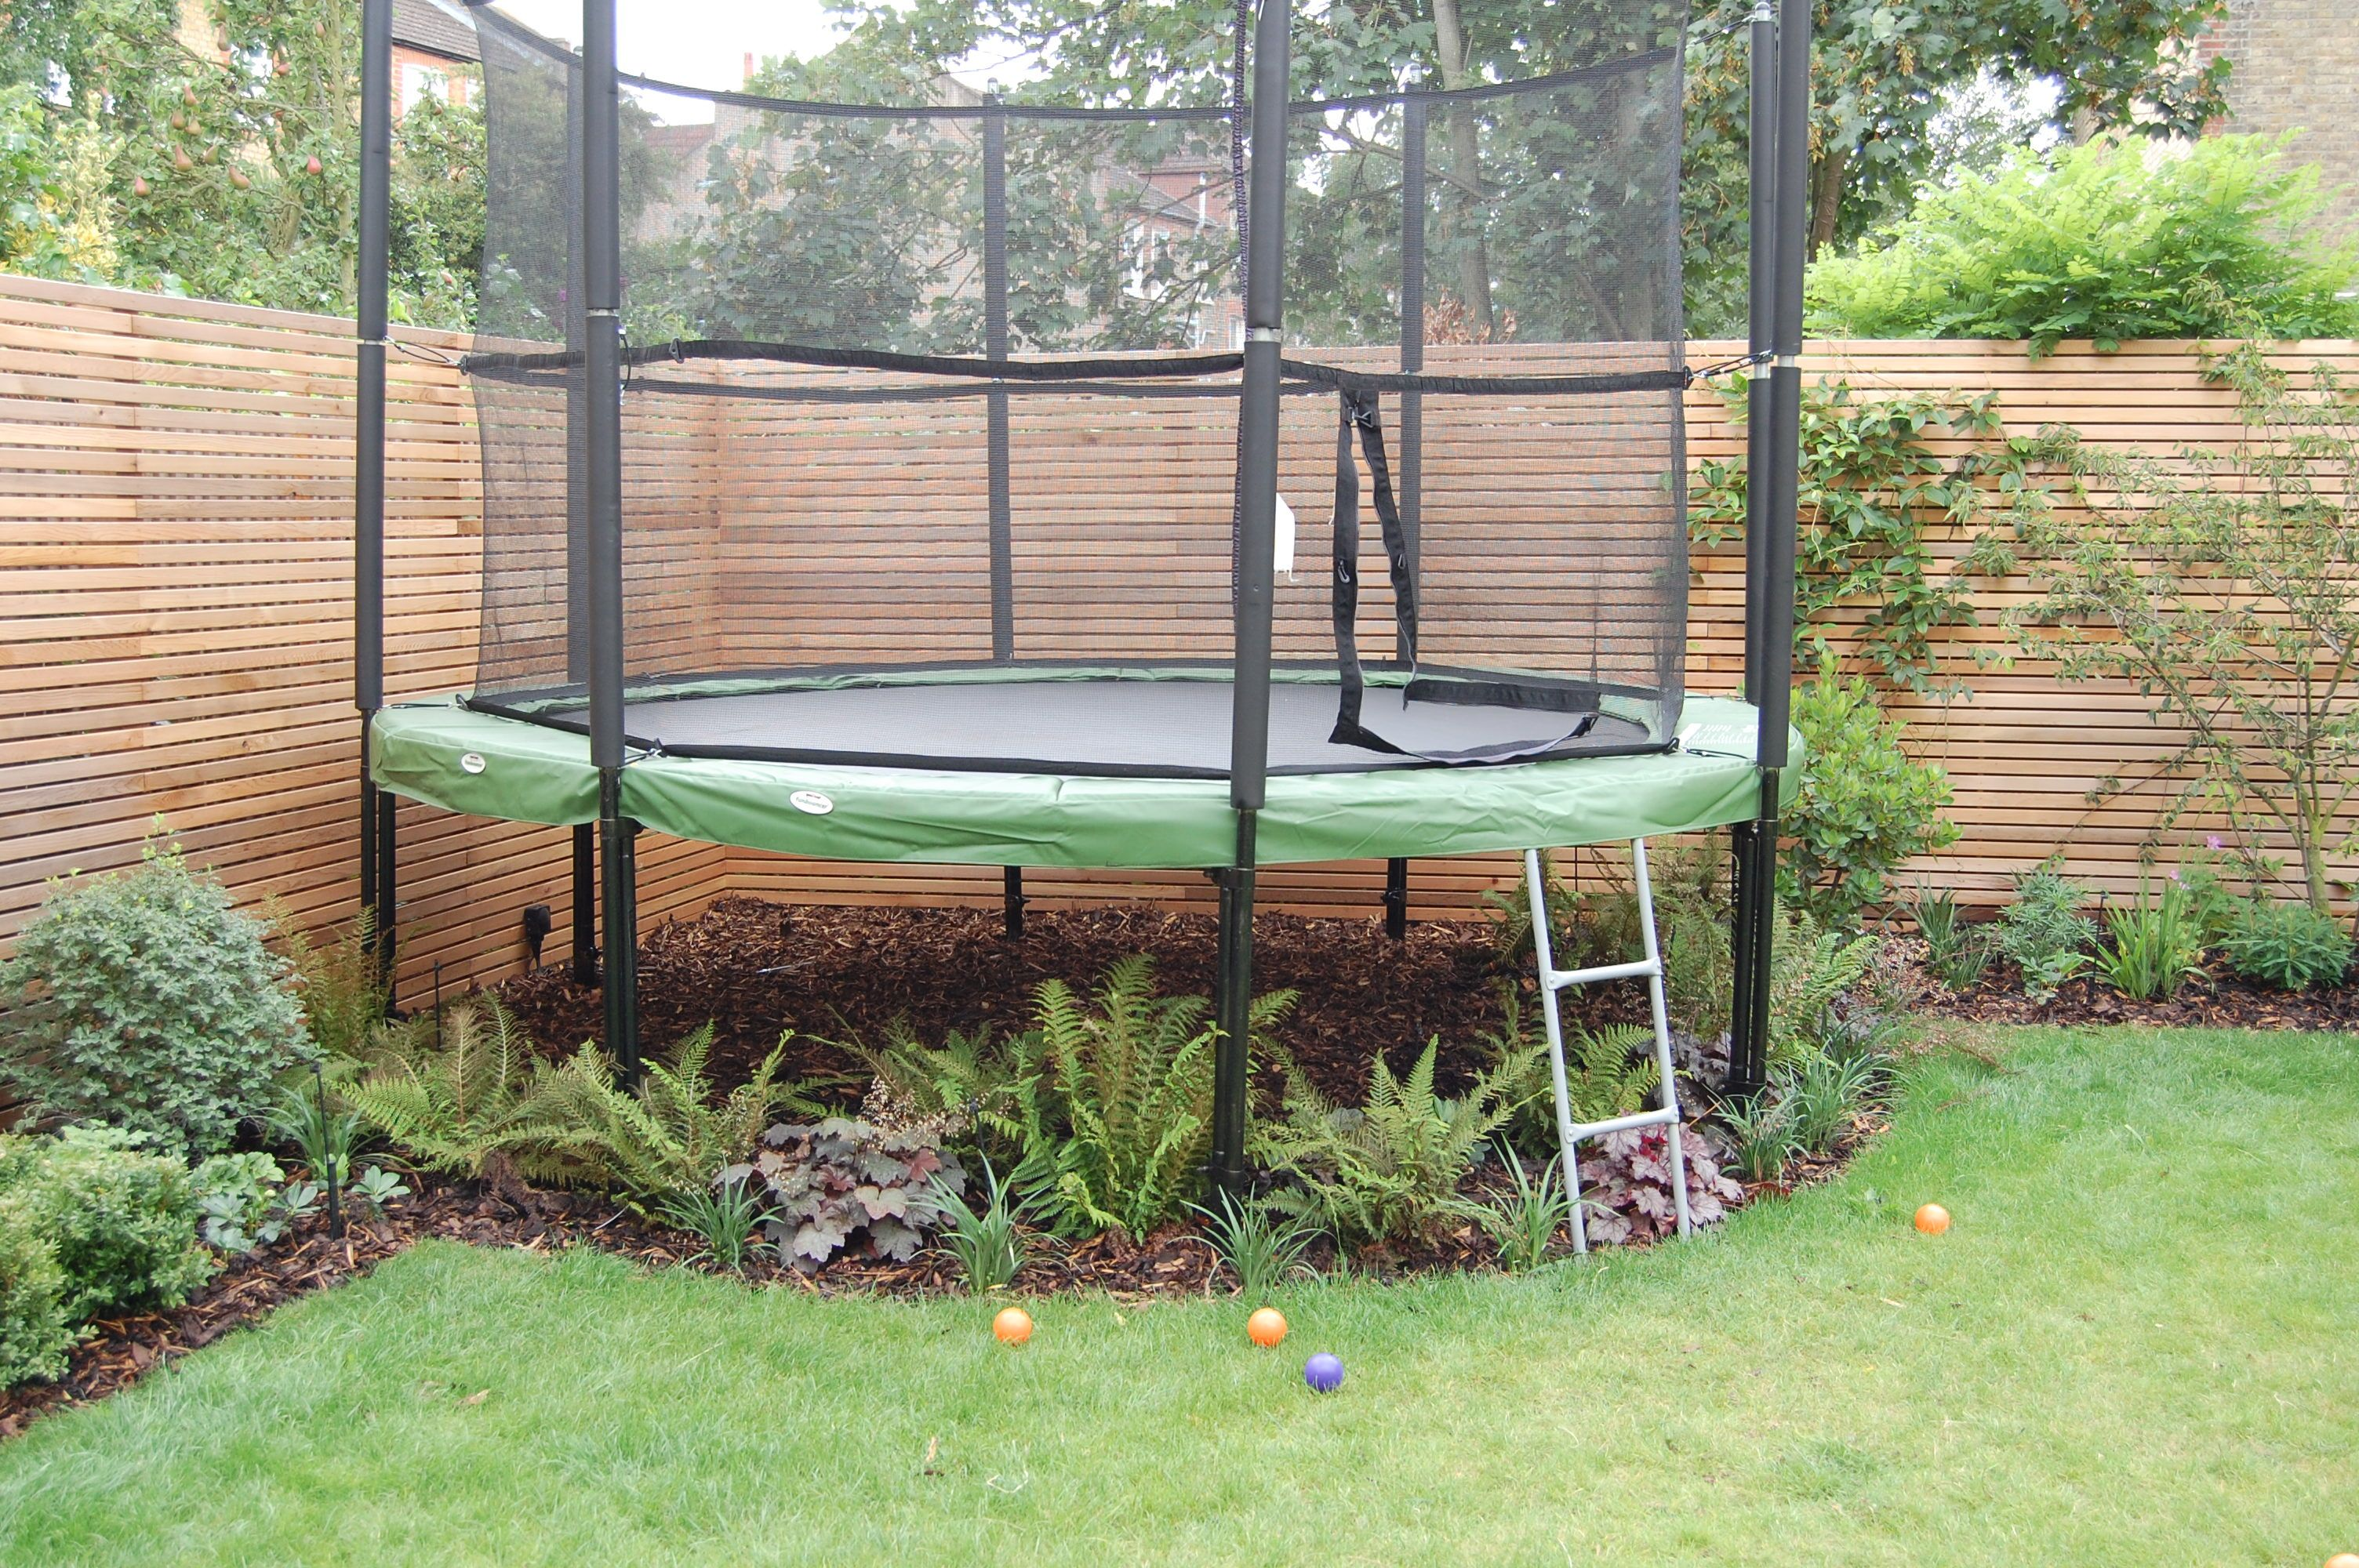 Charmant Shelley Hugh Jones Garden Design : Underplanted Trampoline